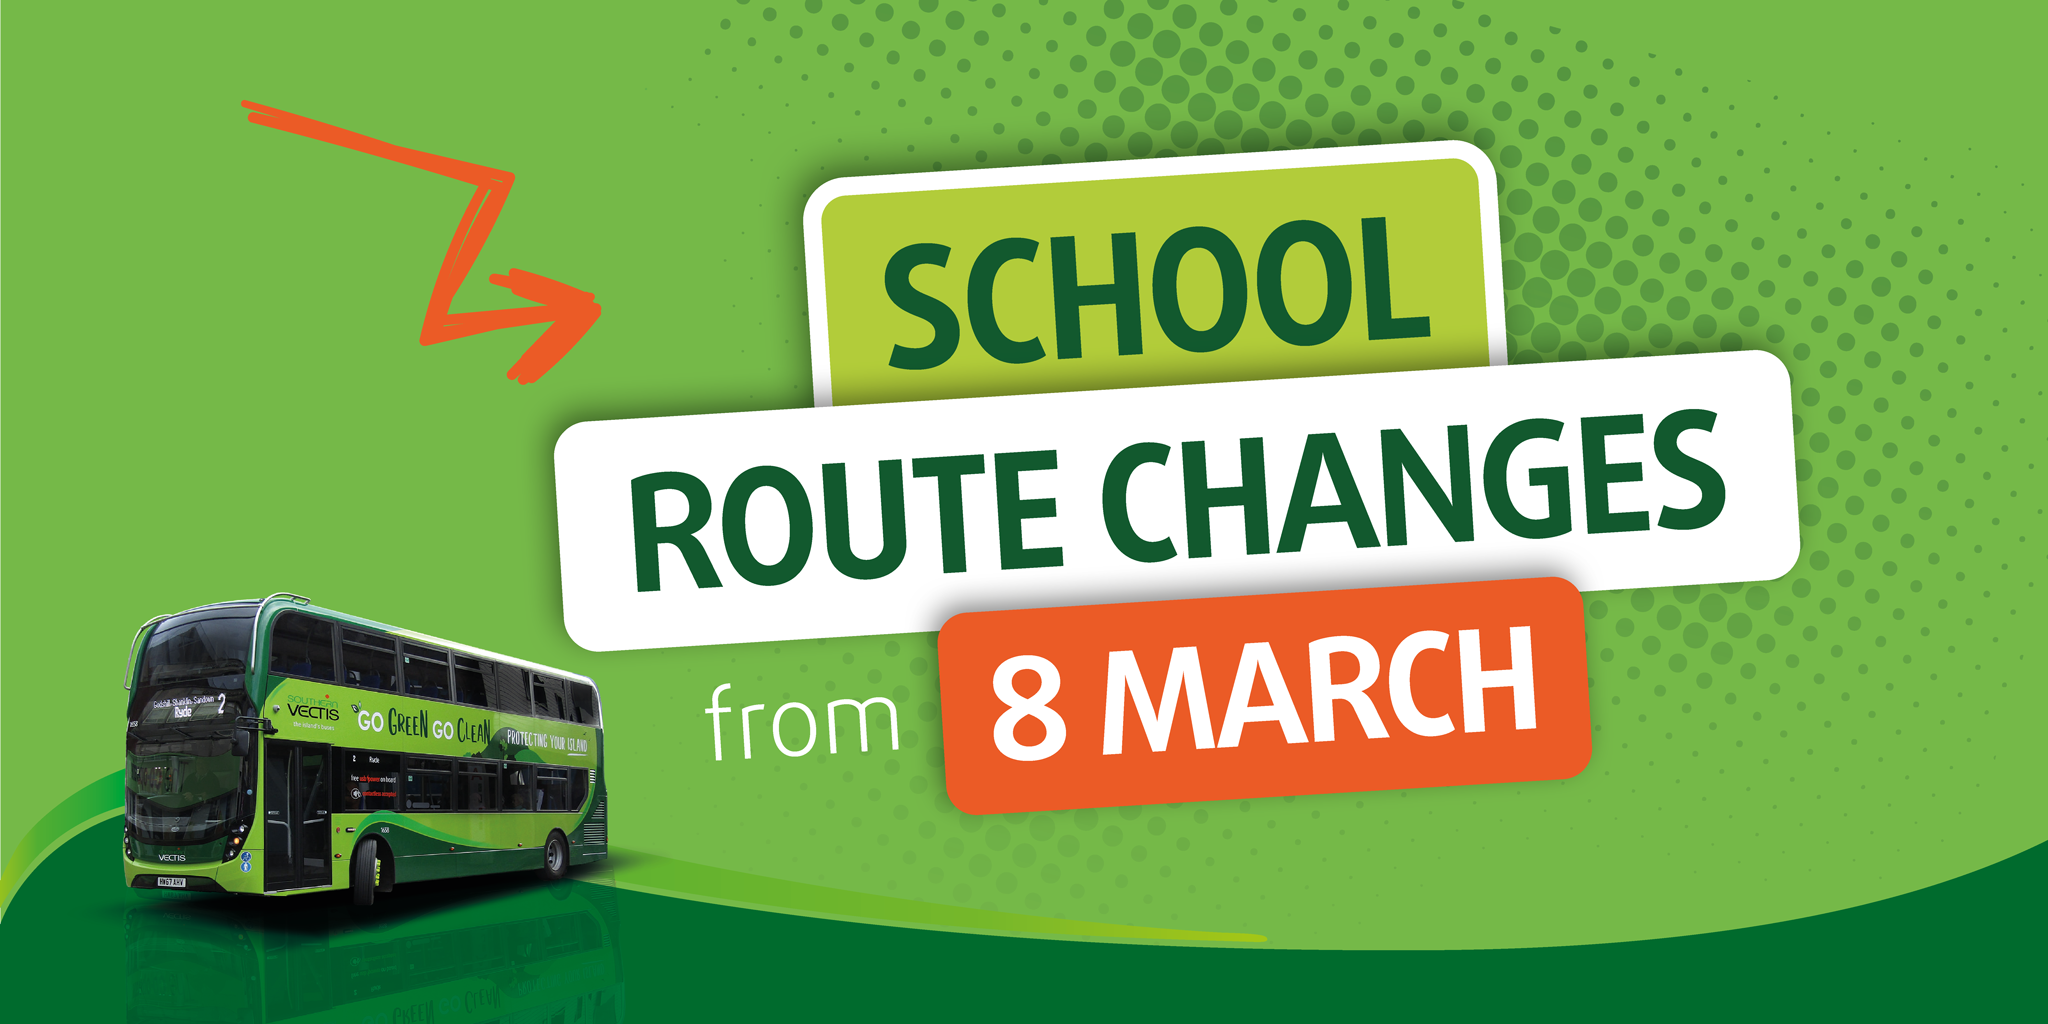 school route changes from monday 8th march